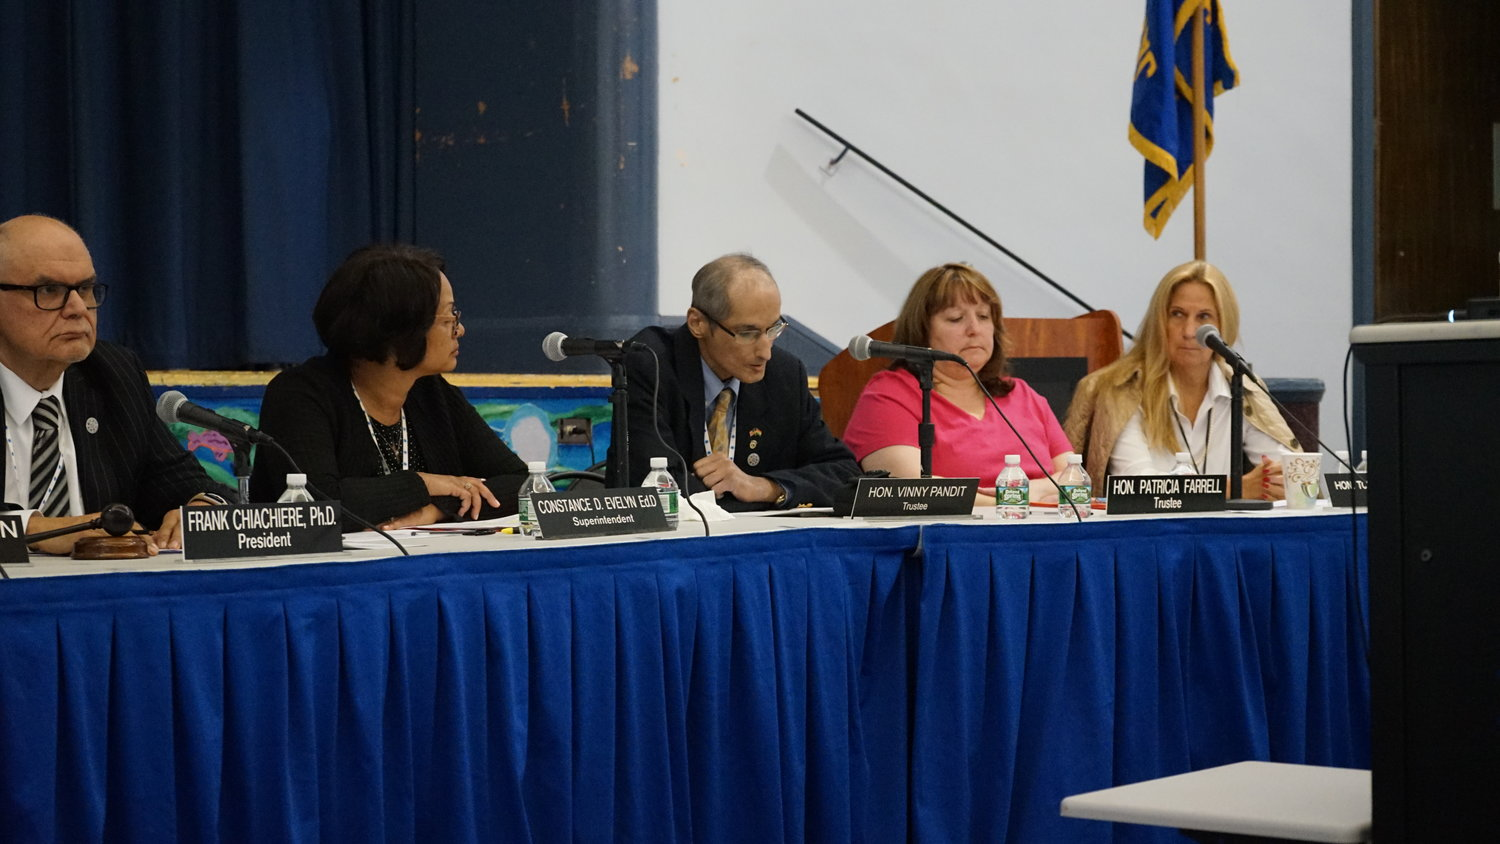 District 13 School Board Trustee Vinny Pandit, second from left, is under fire for comments he made on Facebook that members of the Hispanic community considered racist.